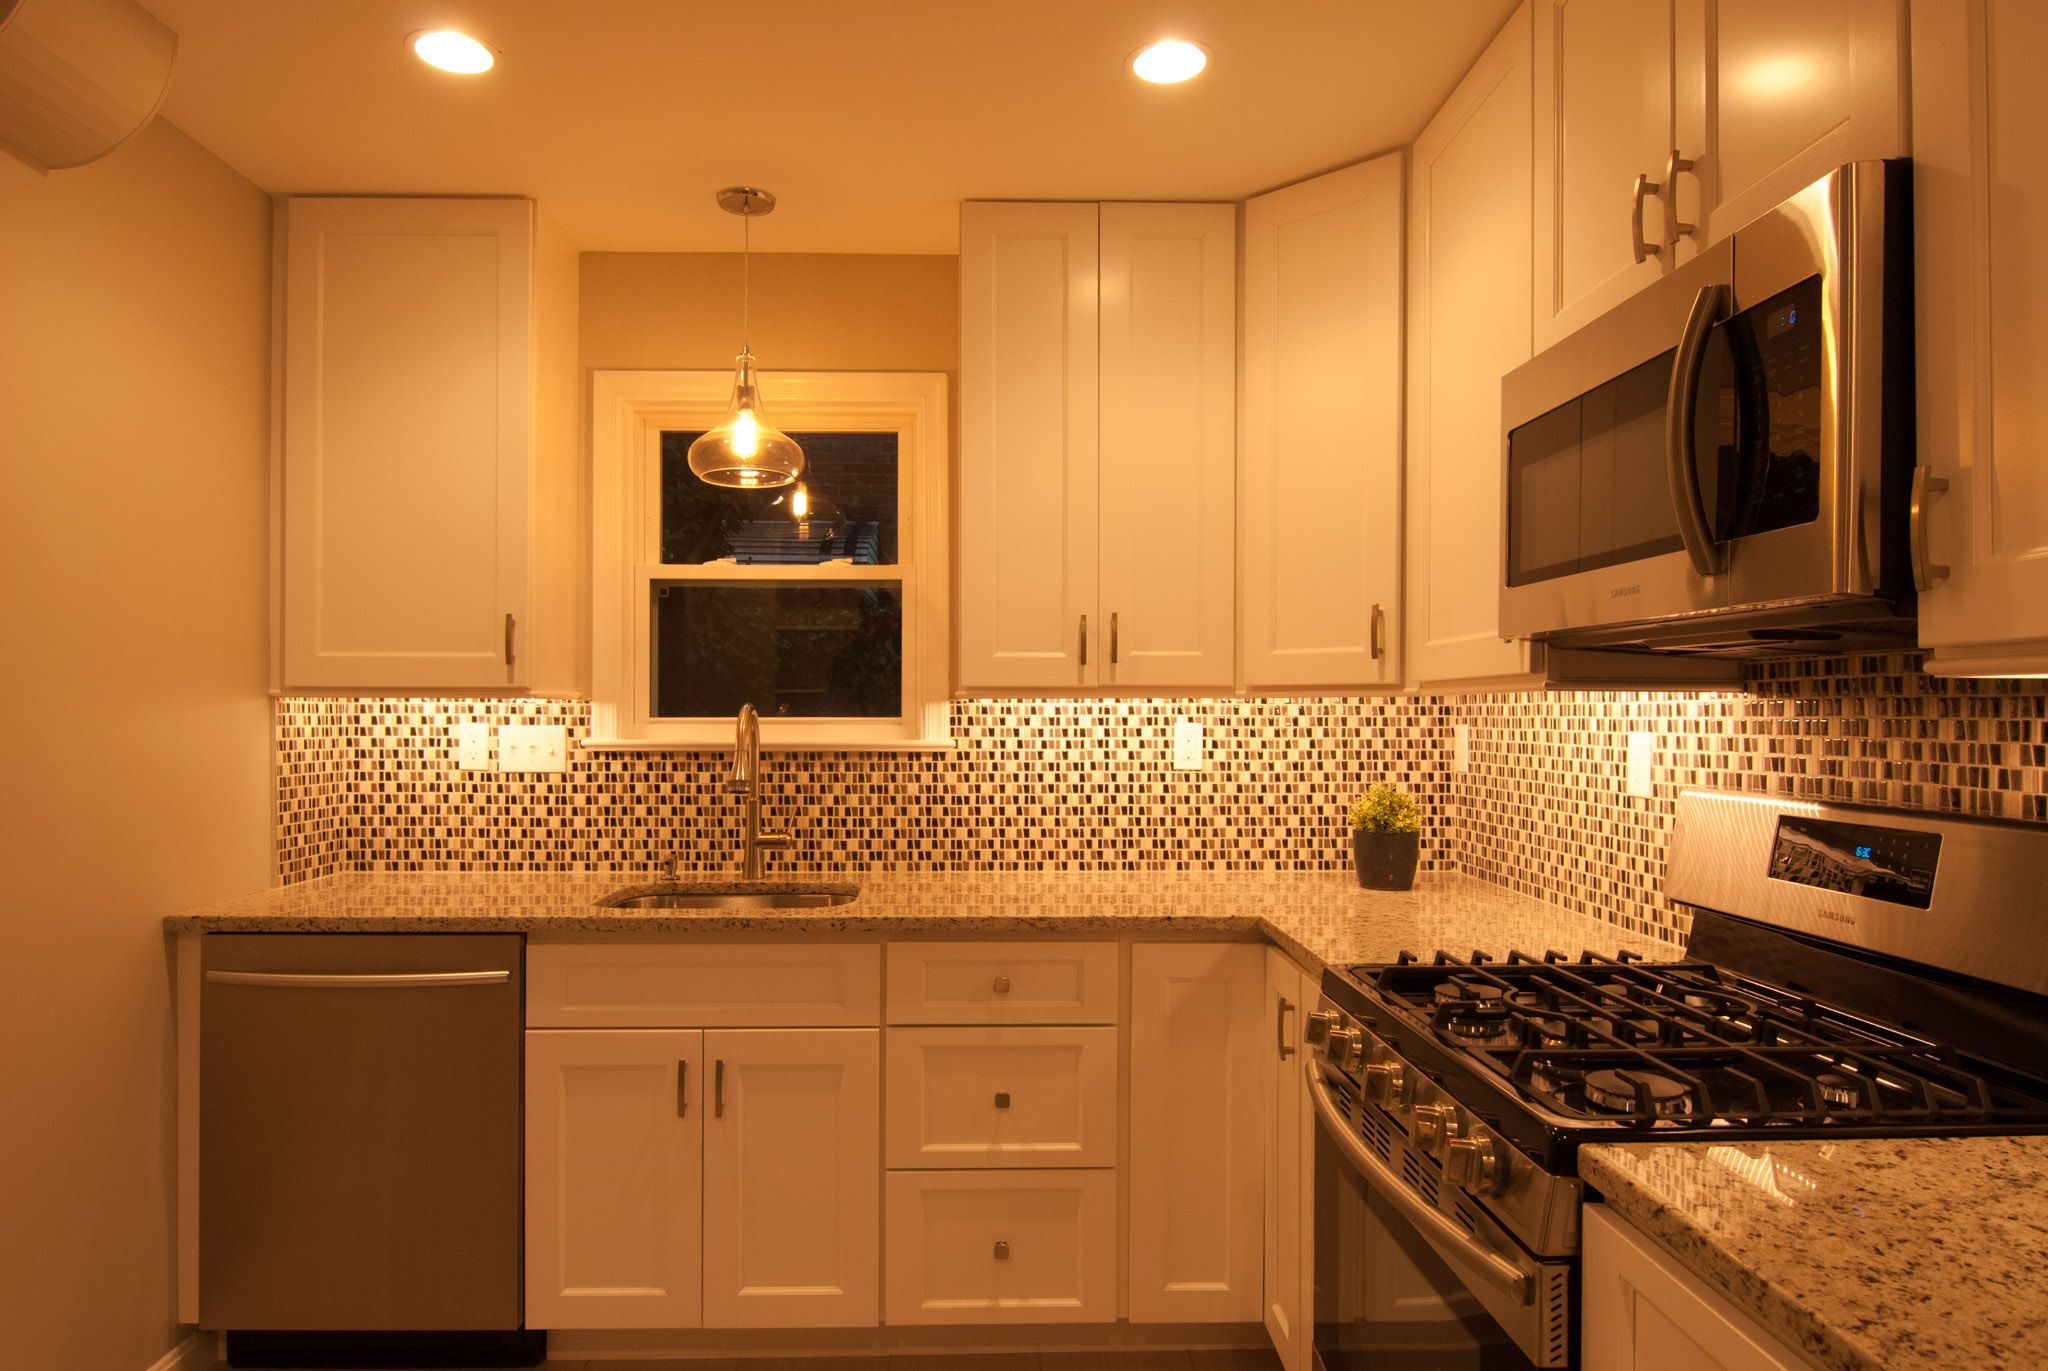 Ambient light photo of the kitchen. Check out that window!